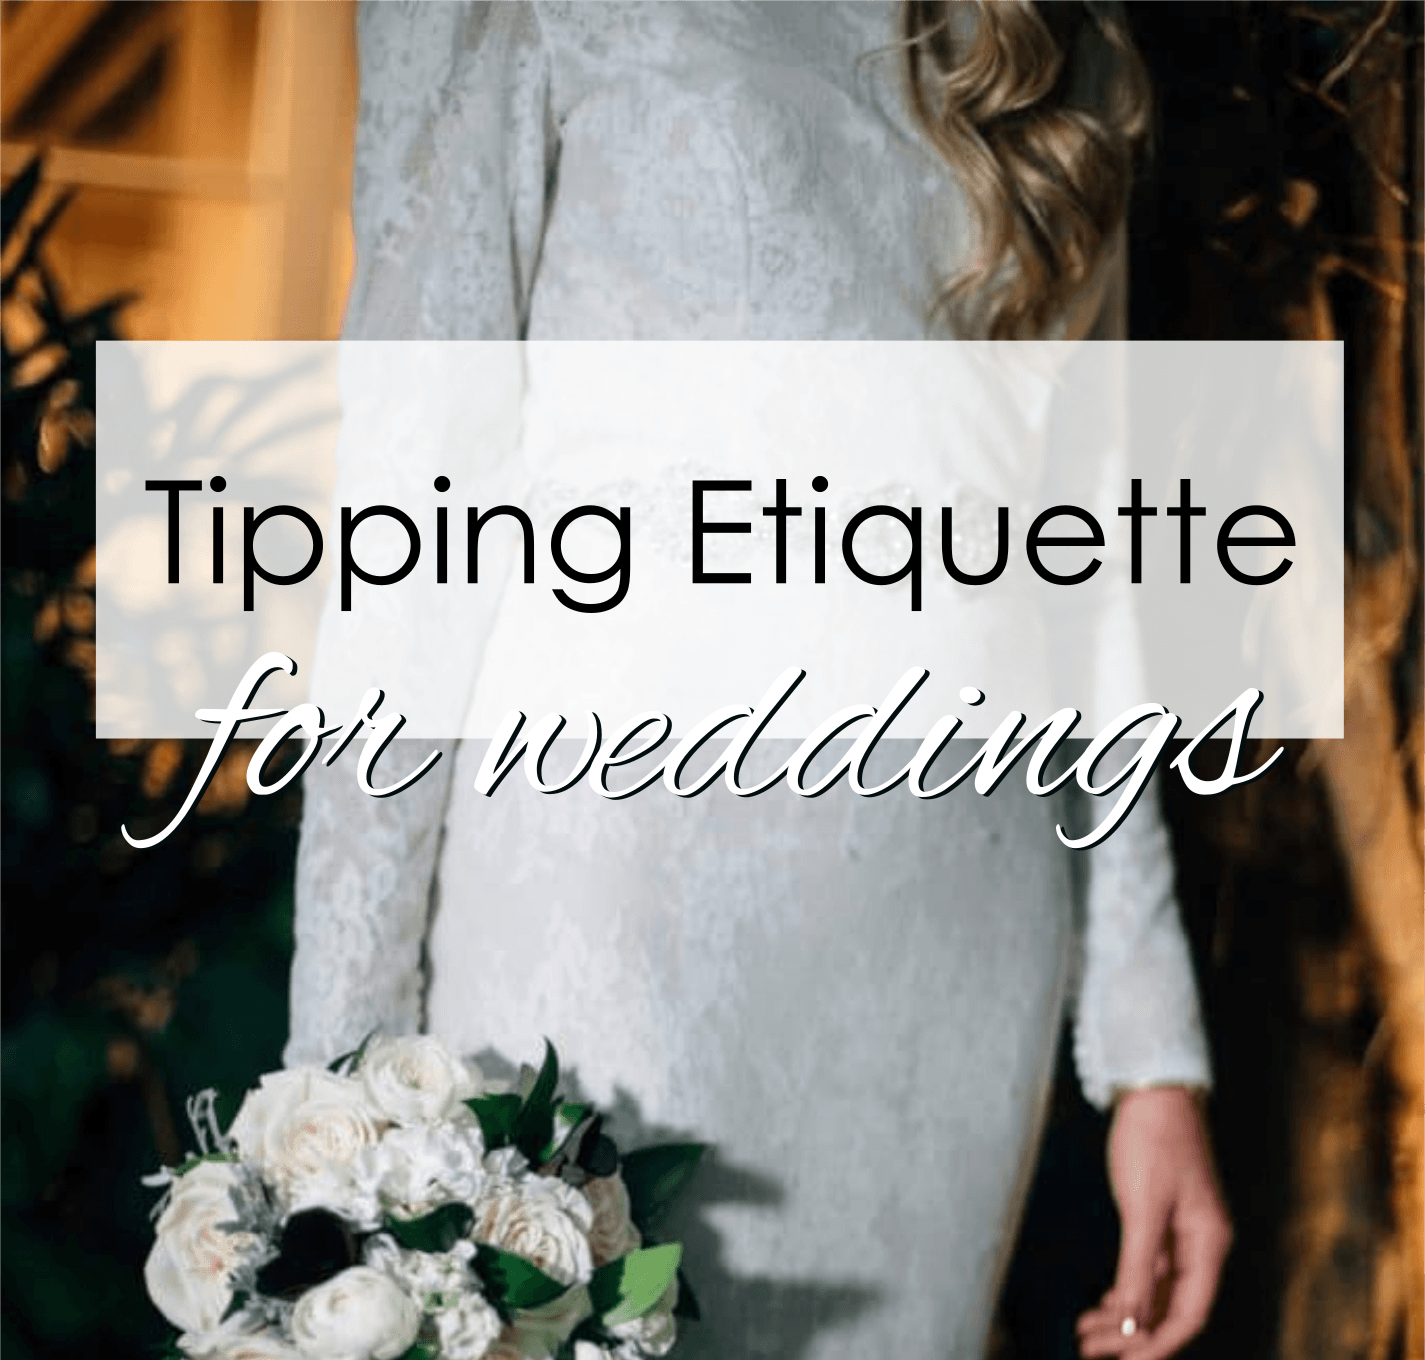 Tipping Etiquette – Gratitude To The Service Providers Who Make Your Day Go Smoothly